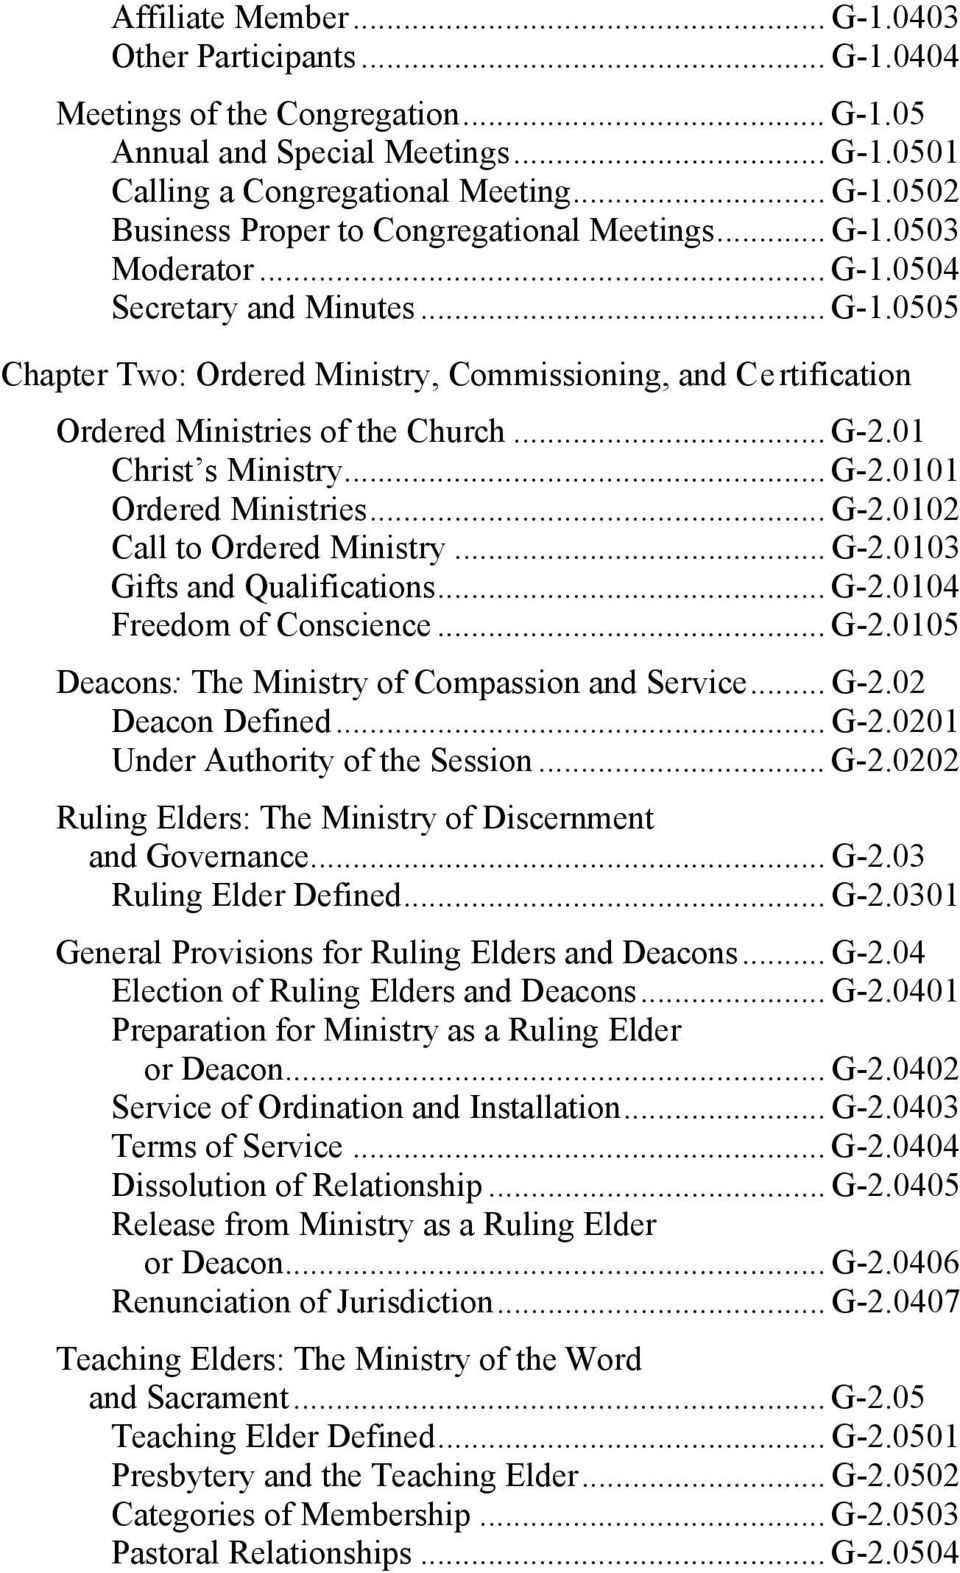 .. G-2.0102 Call to Ordered Ministry... G-2.0103 Gifts and Qualifications... G-2.0104 Freedom of Conscience... G-2.0105 Deacons: The Ministry of Compassion and Service... G-2.02 Deacon Defined... G-2.0201 Under Authority of the Session.